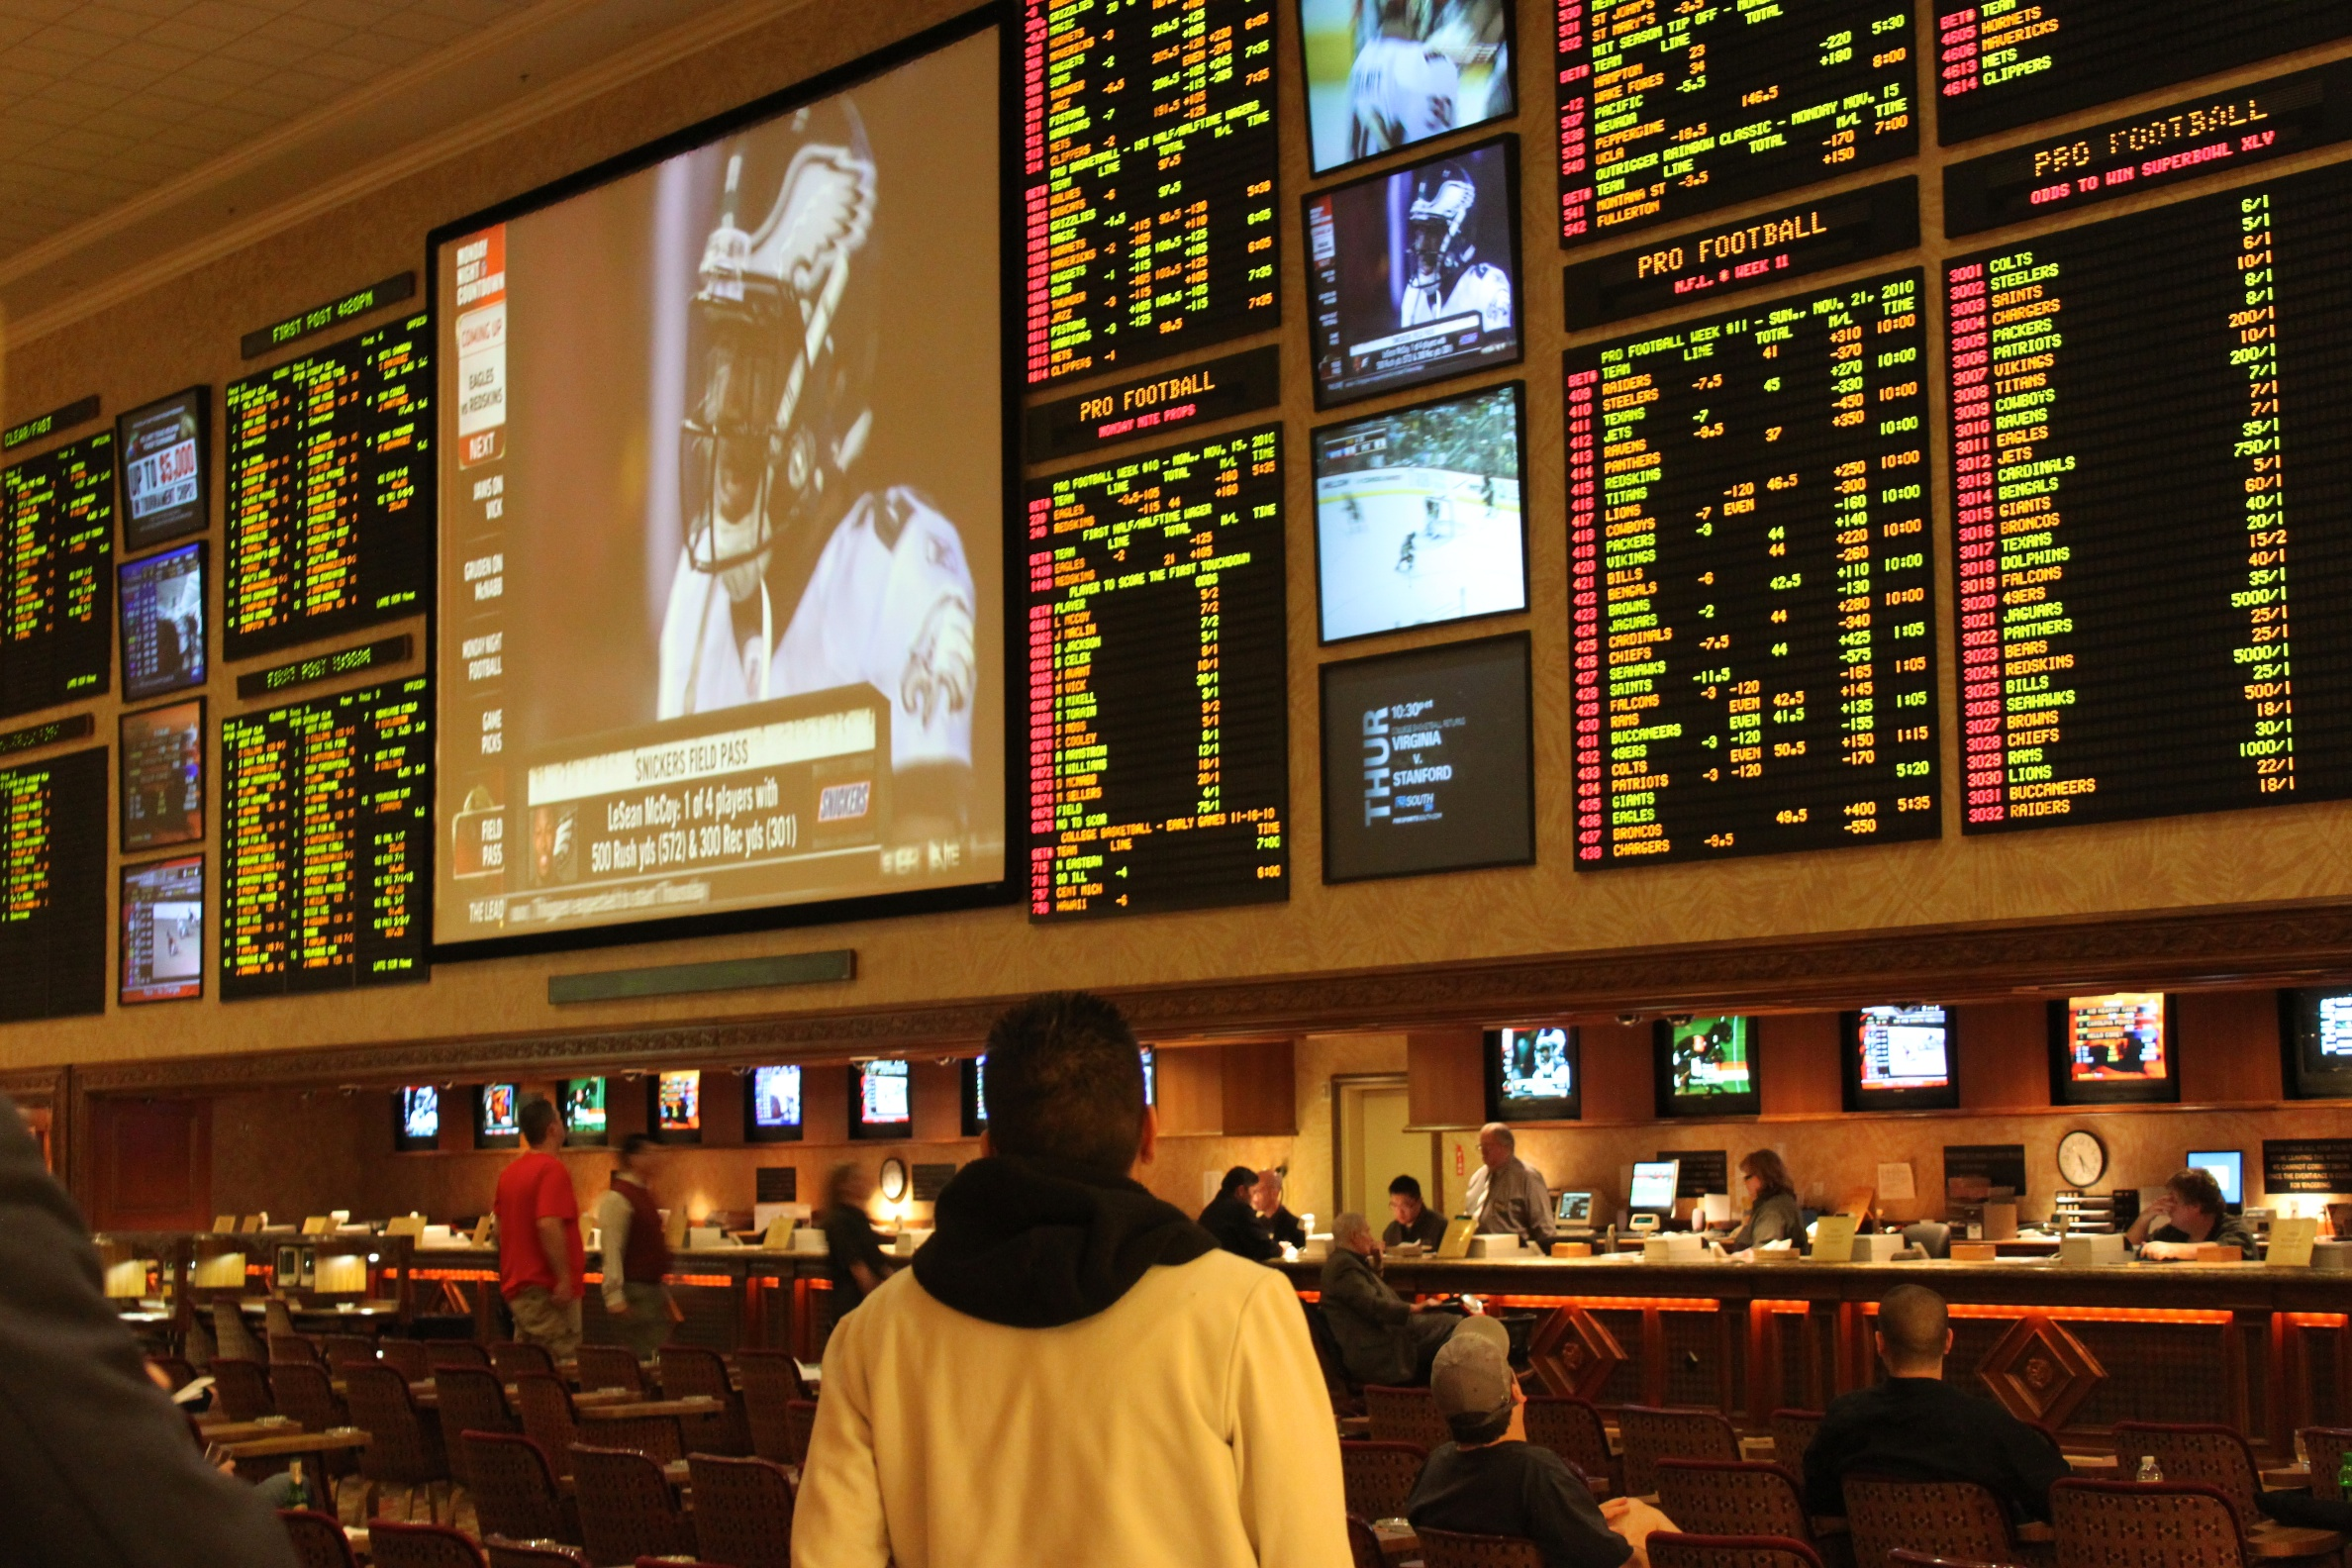 Football gambling sportsbookscom online casinos charitable donations